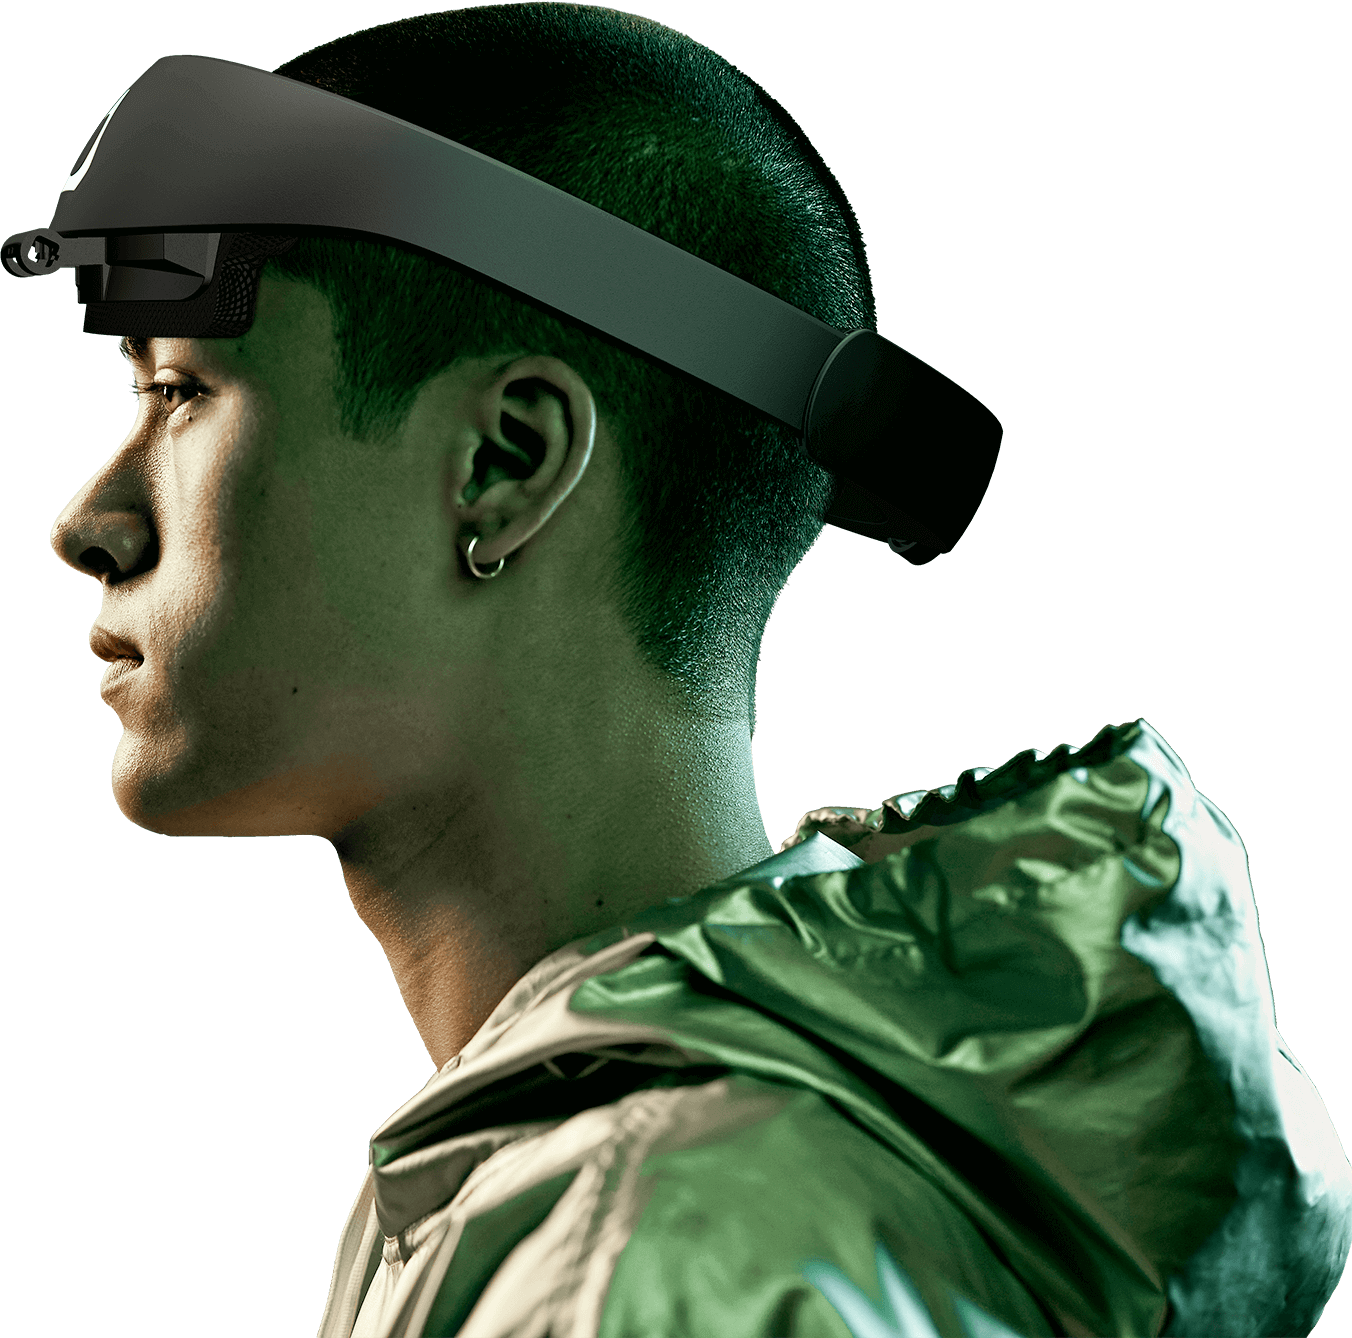 player using VIVE Cosmos Headset